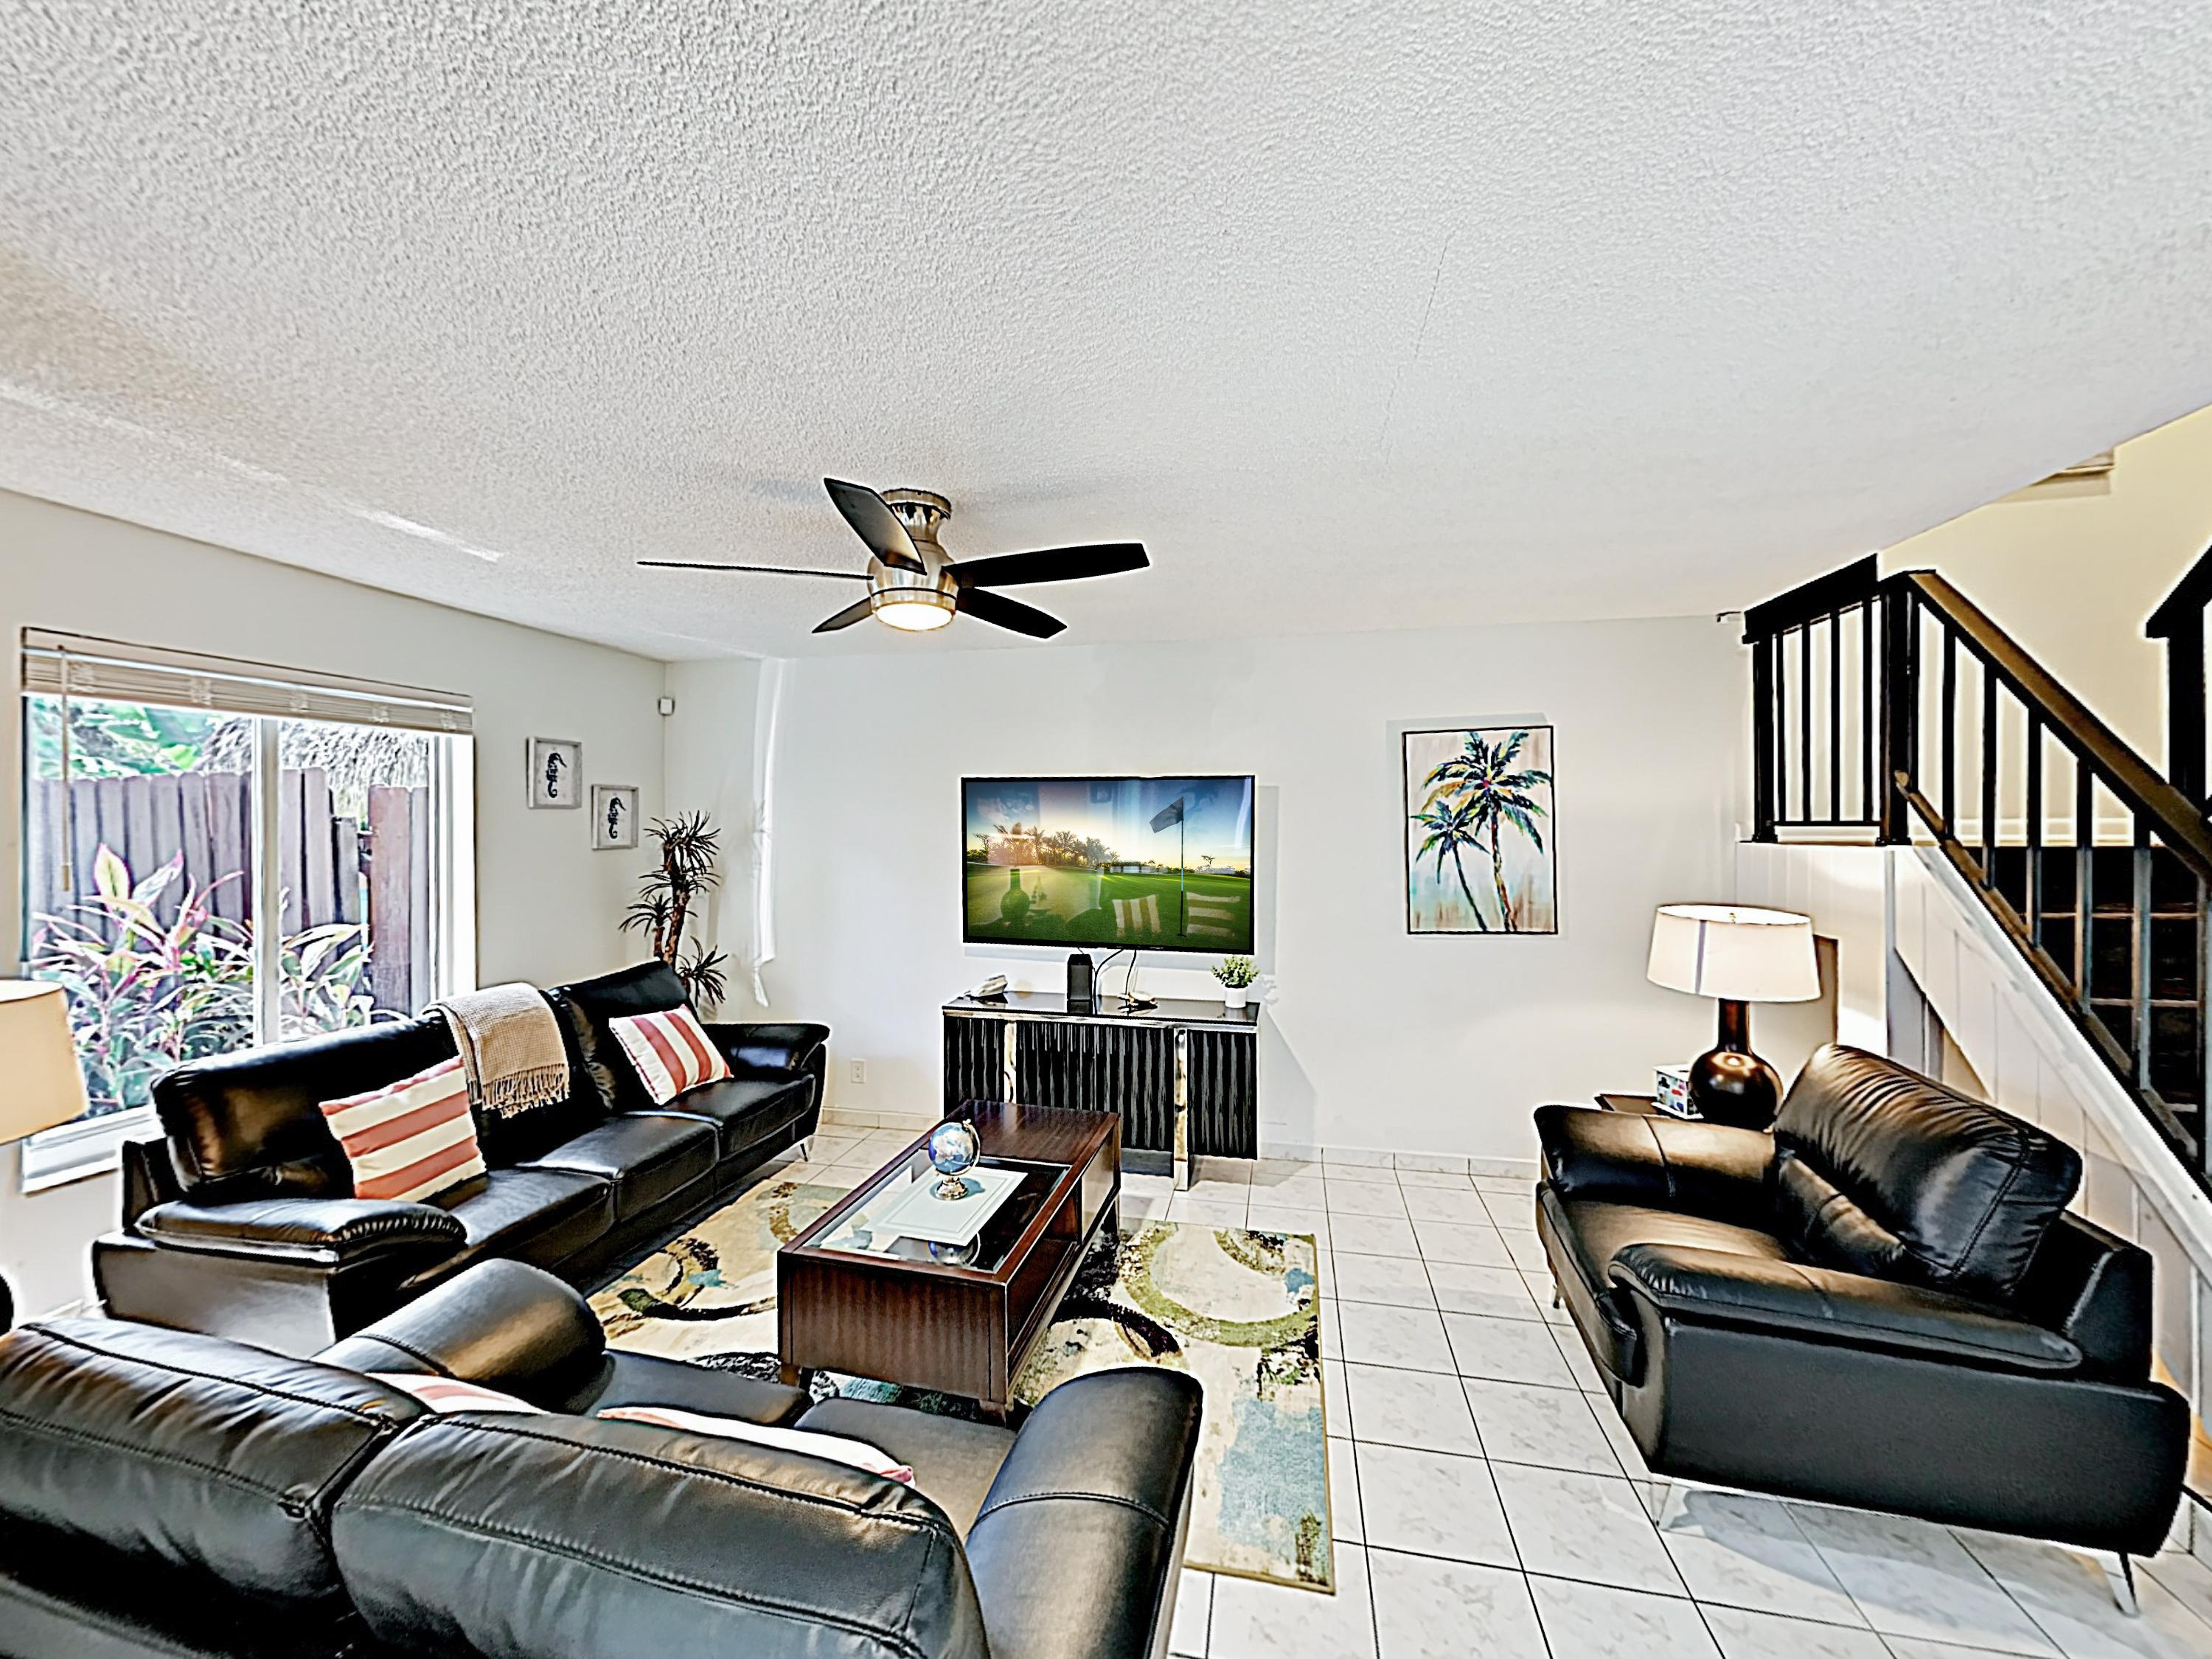 Welcome to Fort Lauderdale! This newly updated duplex is professionally managed by TurnKey Vacation Rentals.